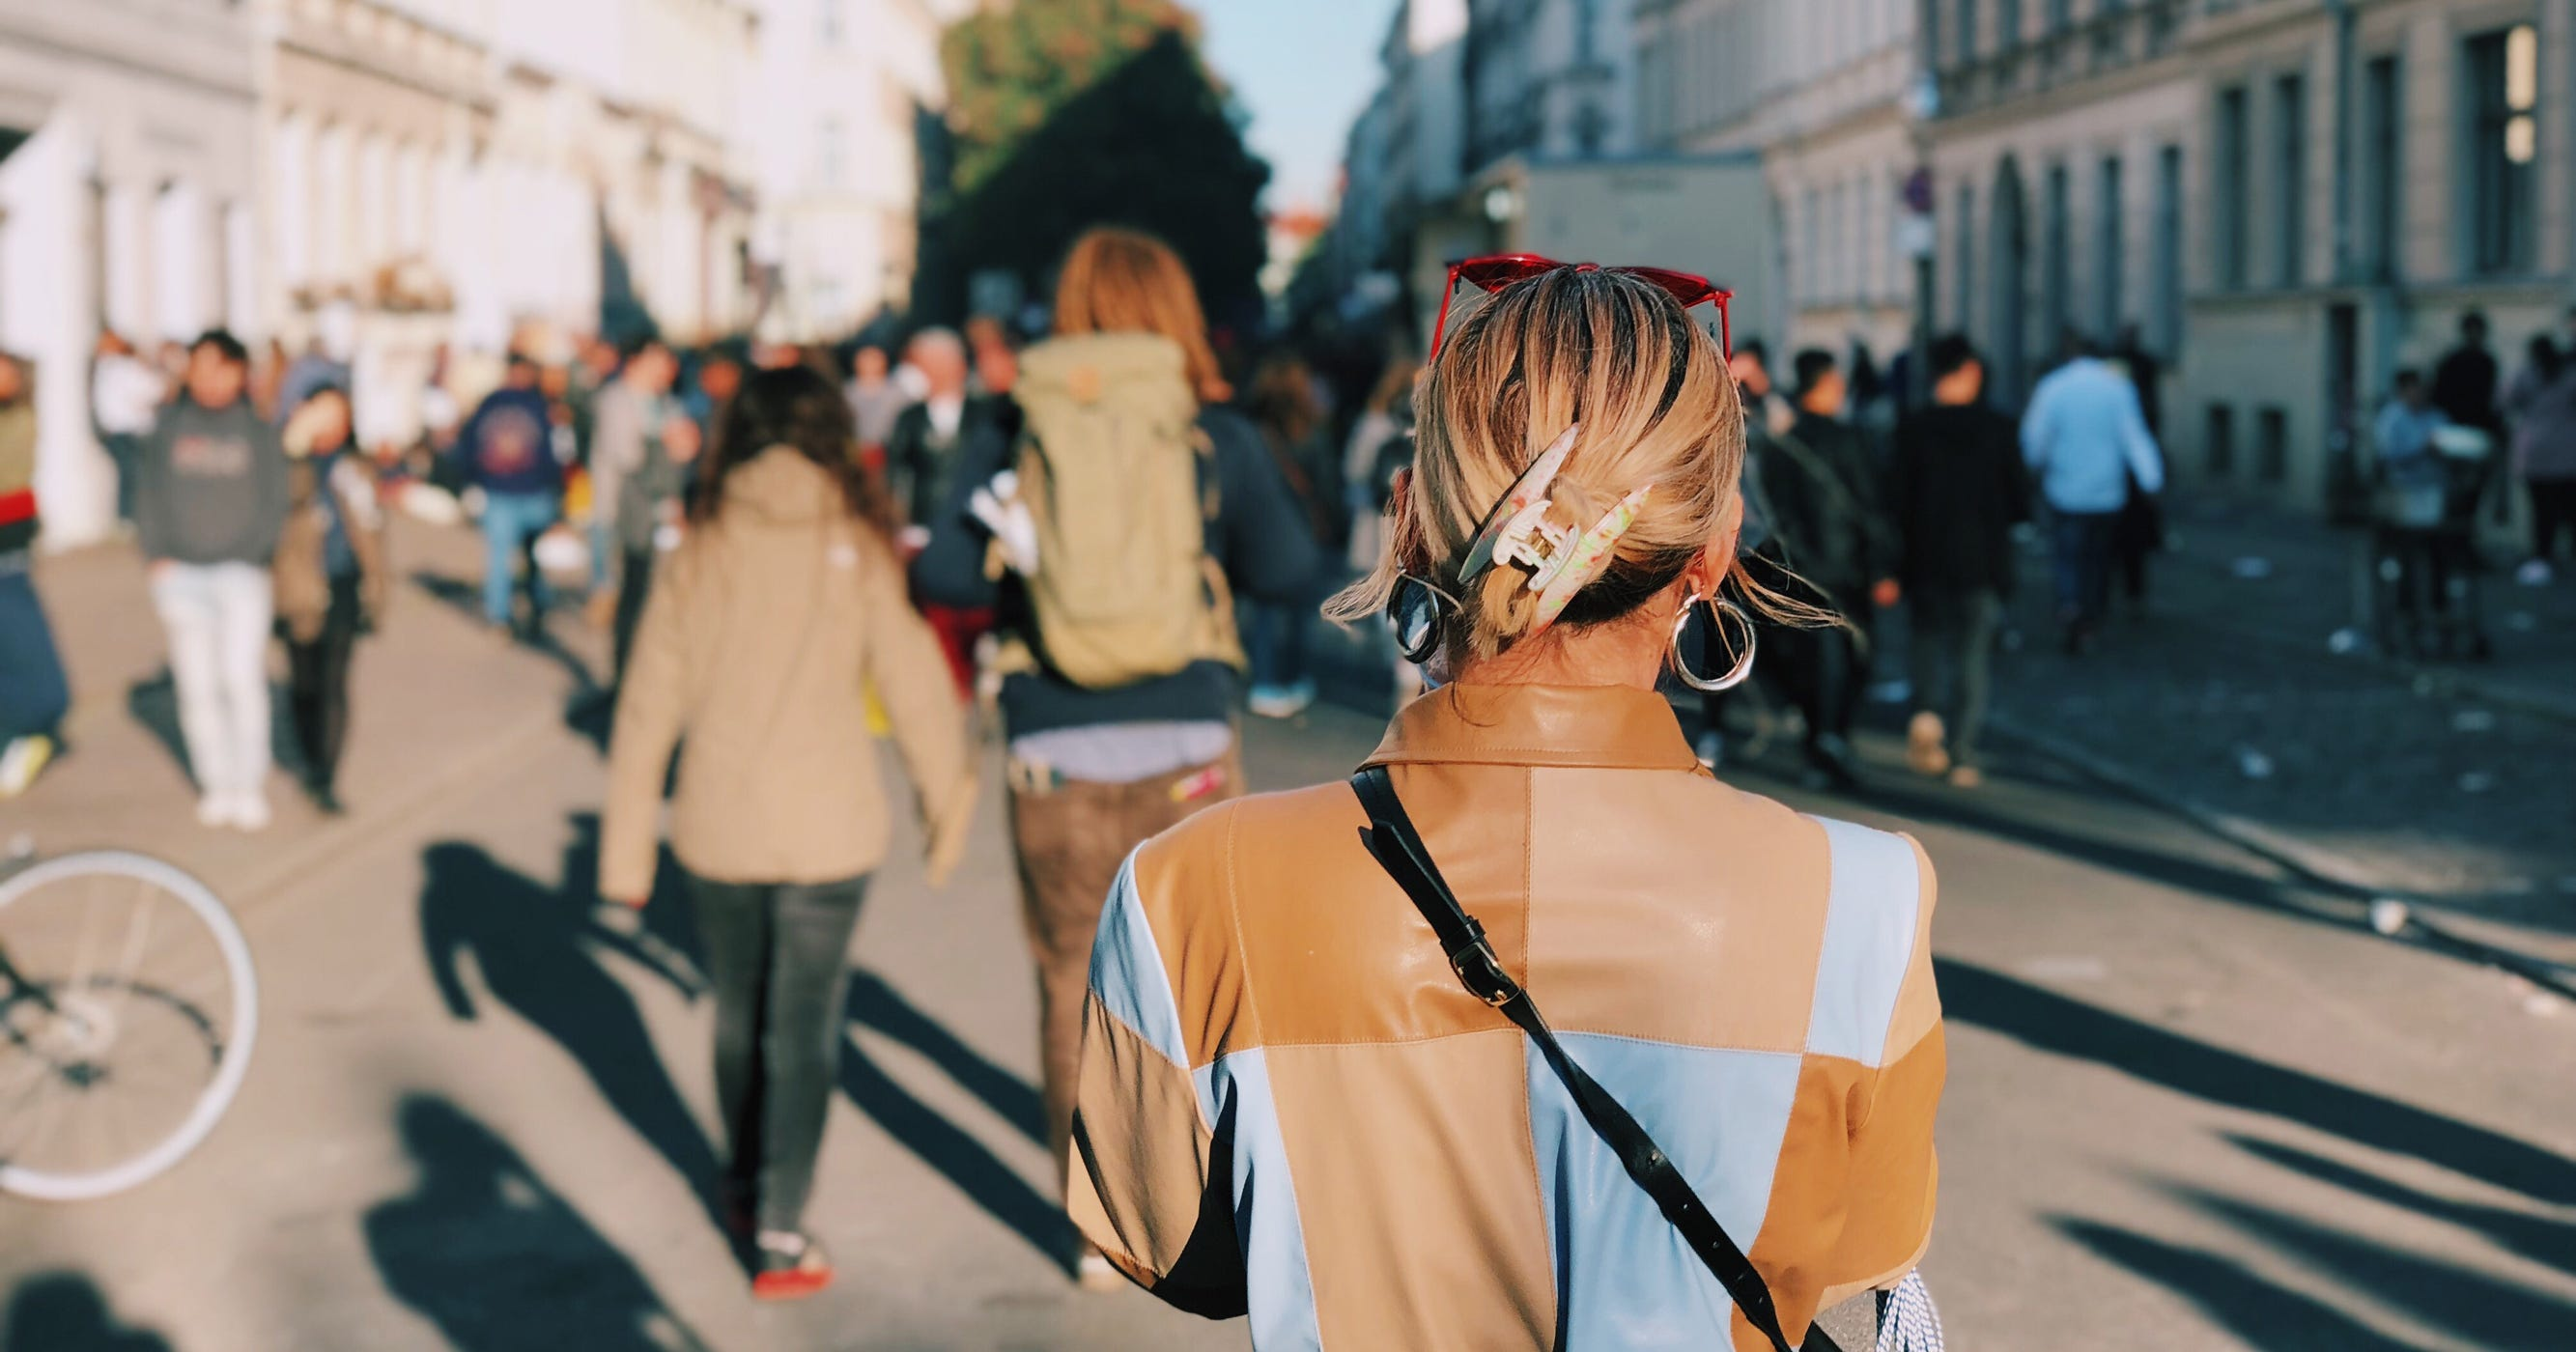 The Highs & Lows Of Moving To Berlin At 30